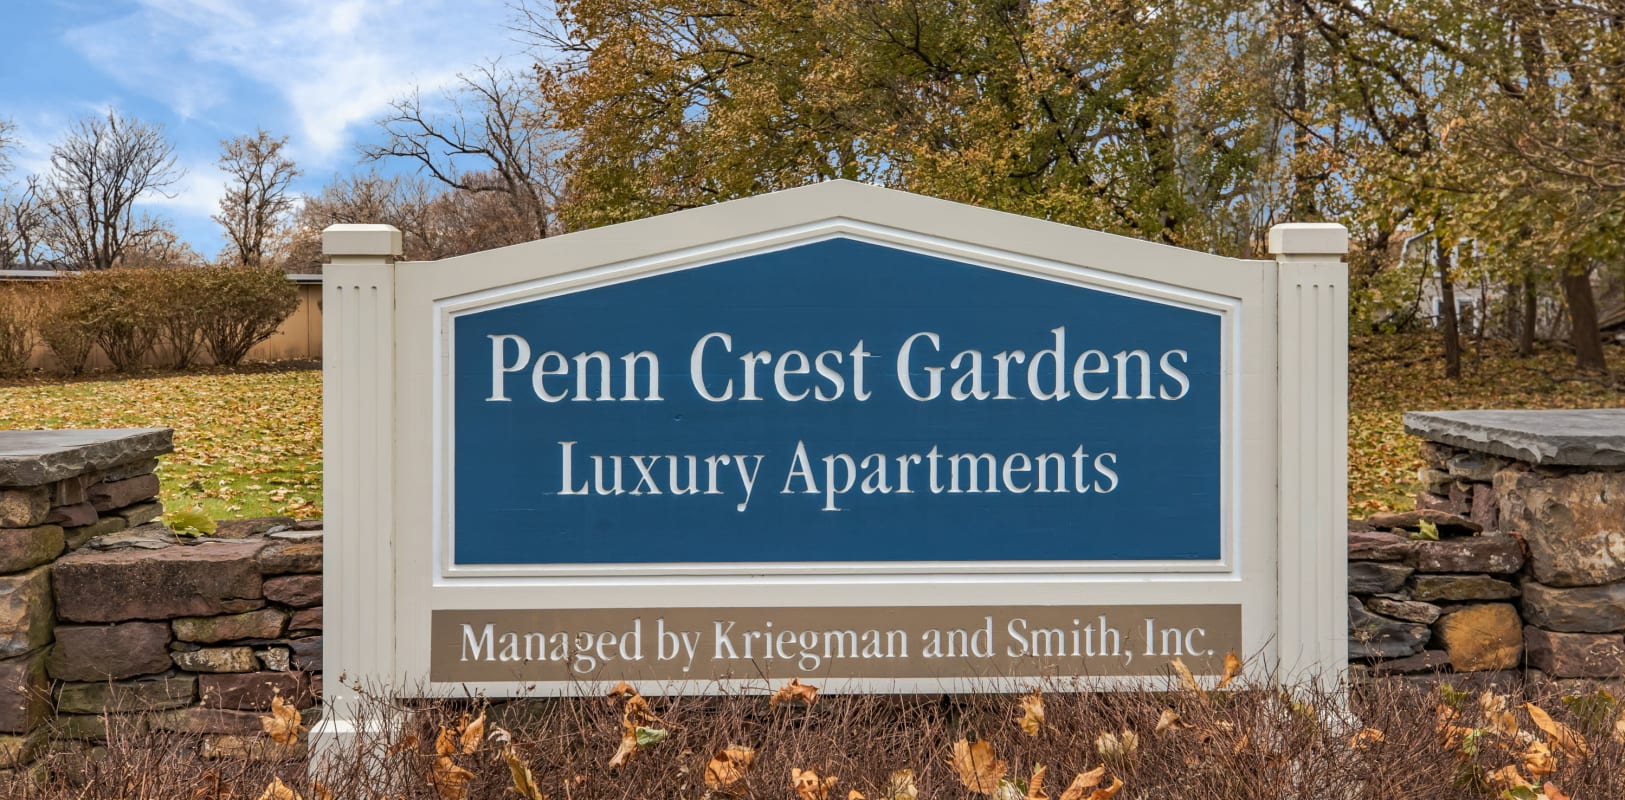 Penn Crest Apartments welcoming sign in Allentown, Pennsylvania